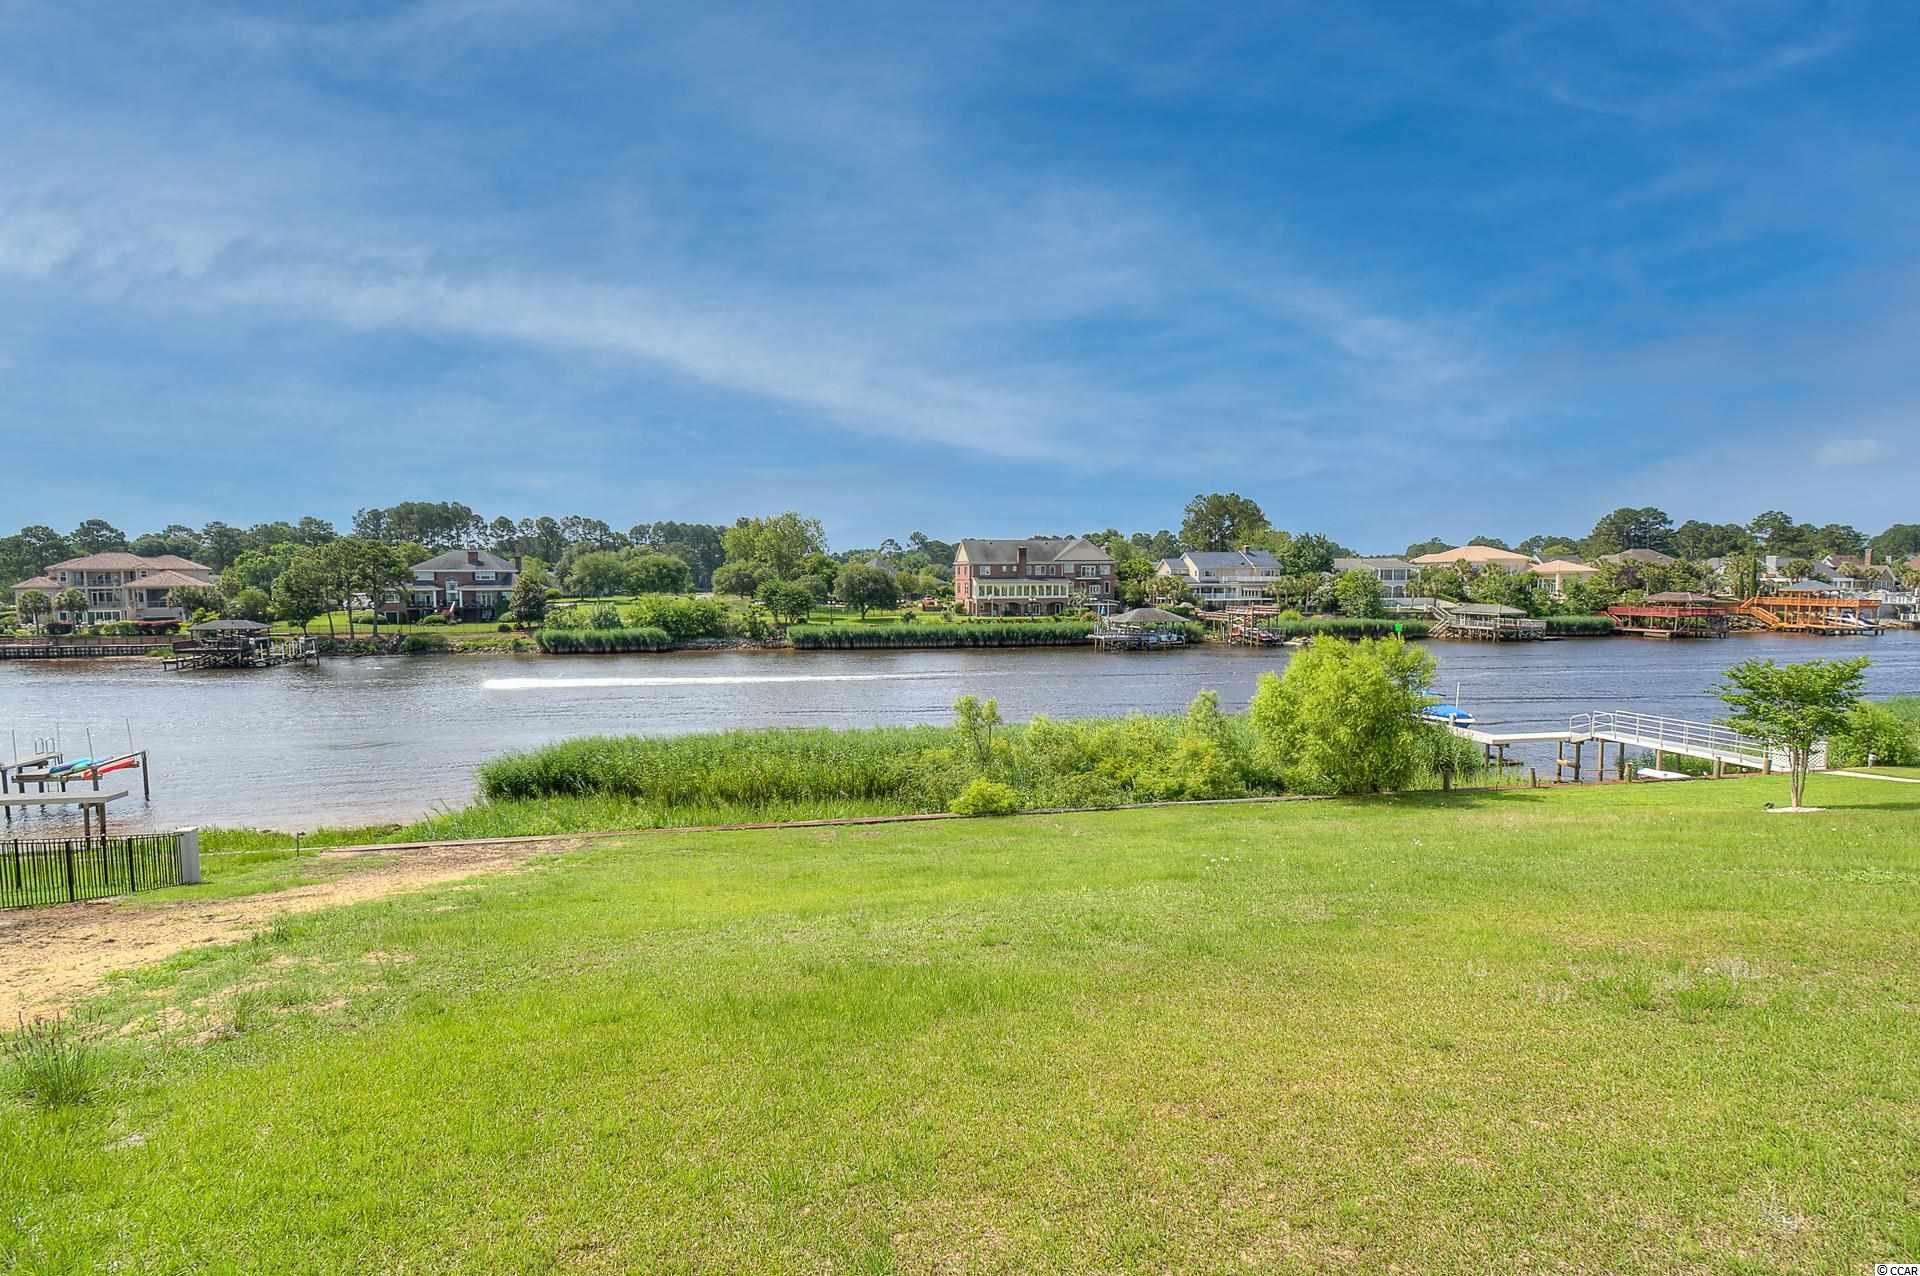 Enjoy gorgeous waterway views on this large, intracoastal waterway lot.  Carolina Waterway Plantation is a private, gated, custom home community that offers a clubhouse, pools, a playground, a gazebo, tennis courts, a boat ramp, storage for RV and boats and more. The Carolina Forest area offers award-winning schools, medical facilities, golf courses, grocery stores, hiking and biking trails, and much more.  Minutes from the ocean, shopping and everything Myrtle Beach has to offer.  Bulkhead is already in place , lot is cleared, is approximately 60 X 200 and is ready for you to build your dream home.  Owner is related to listing agent.